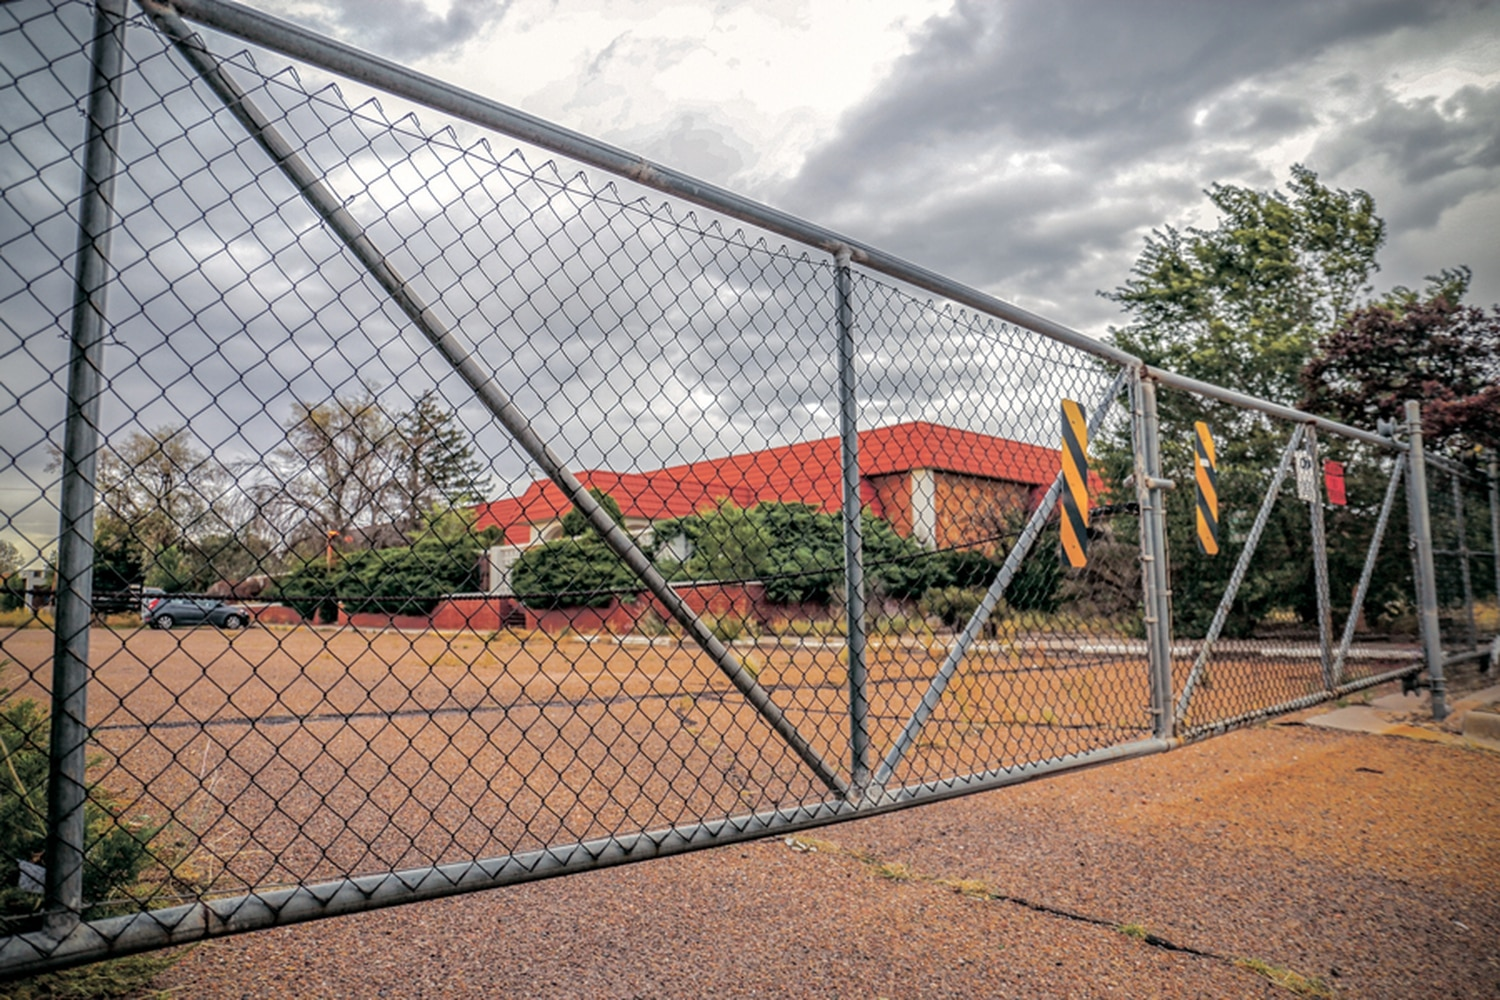 Once one of Santa Fe's biggest employers, the old Eberline facility has been fenced off and vacant for years.